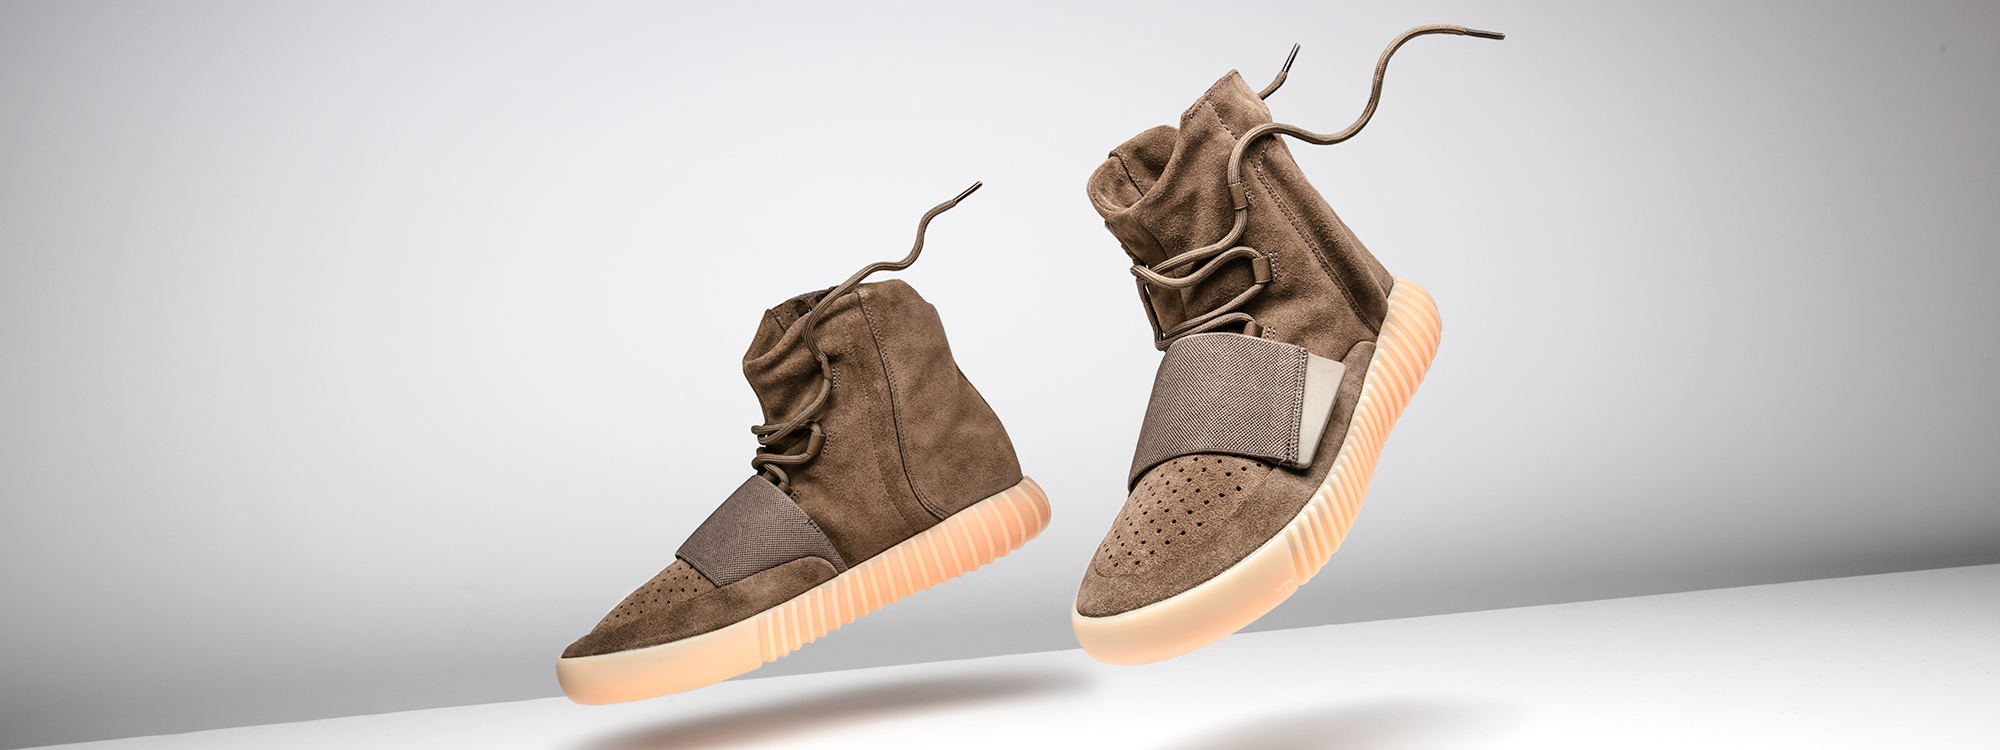 Perfect Adidas Yeezy Boost 750 Light Brown / Chocolate Free Shipping via DHL cheap